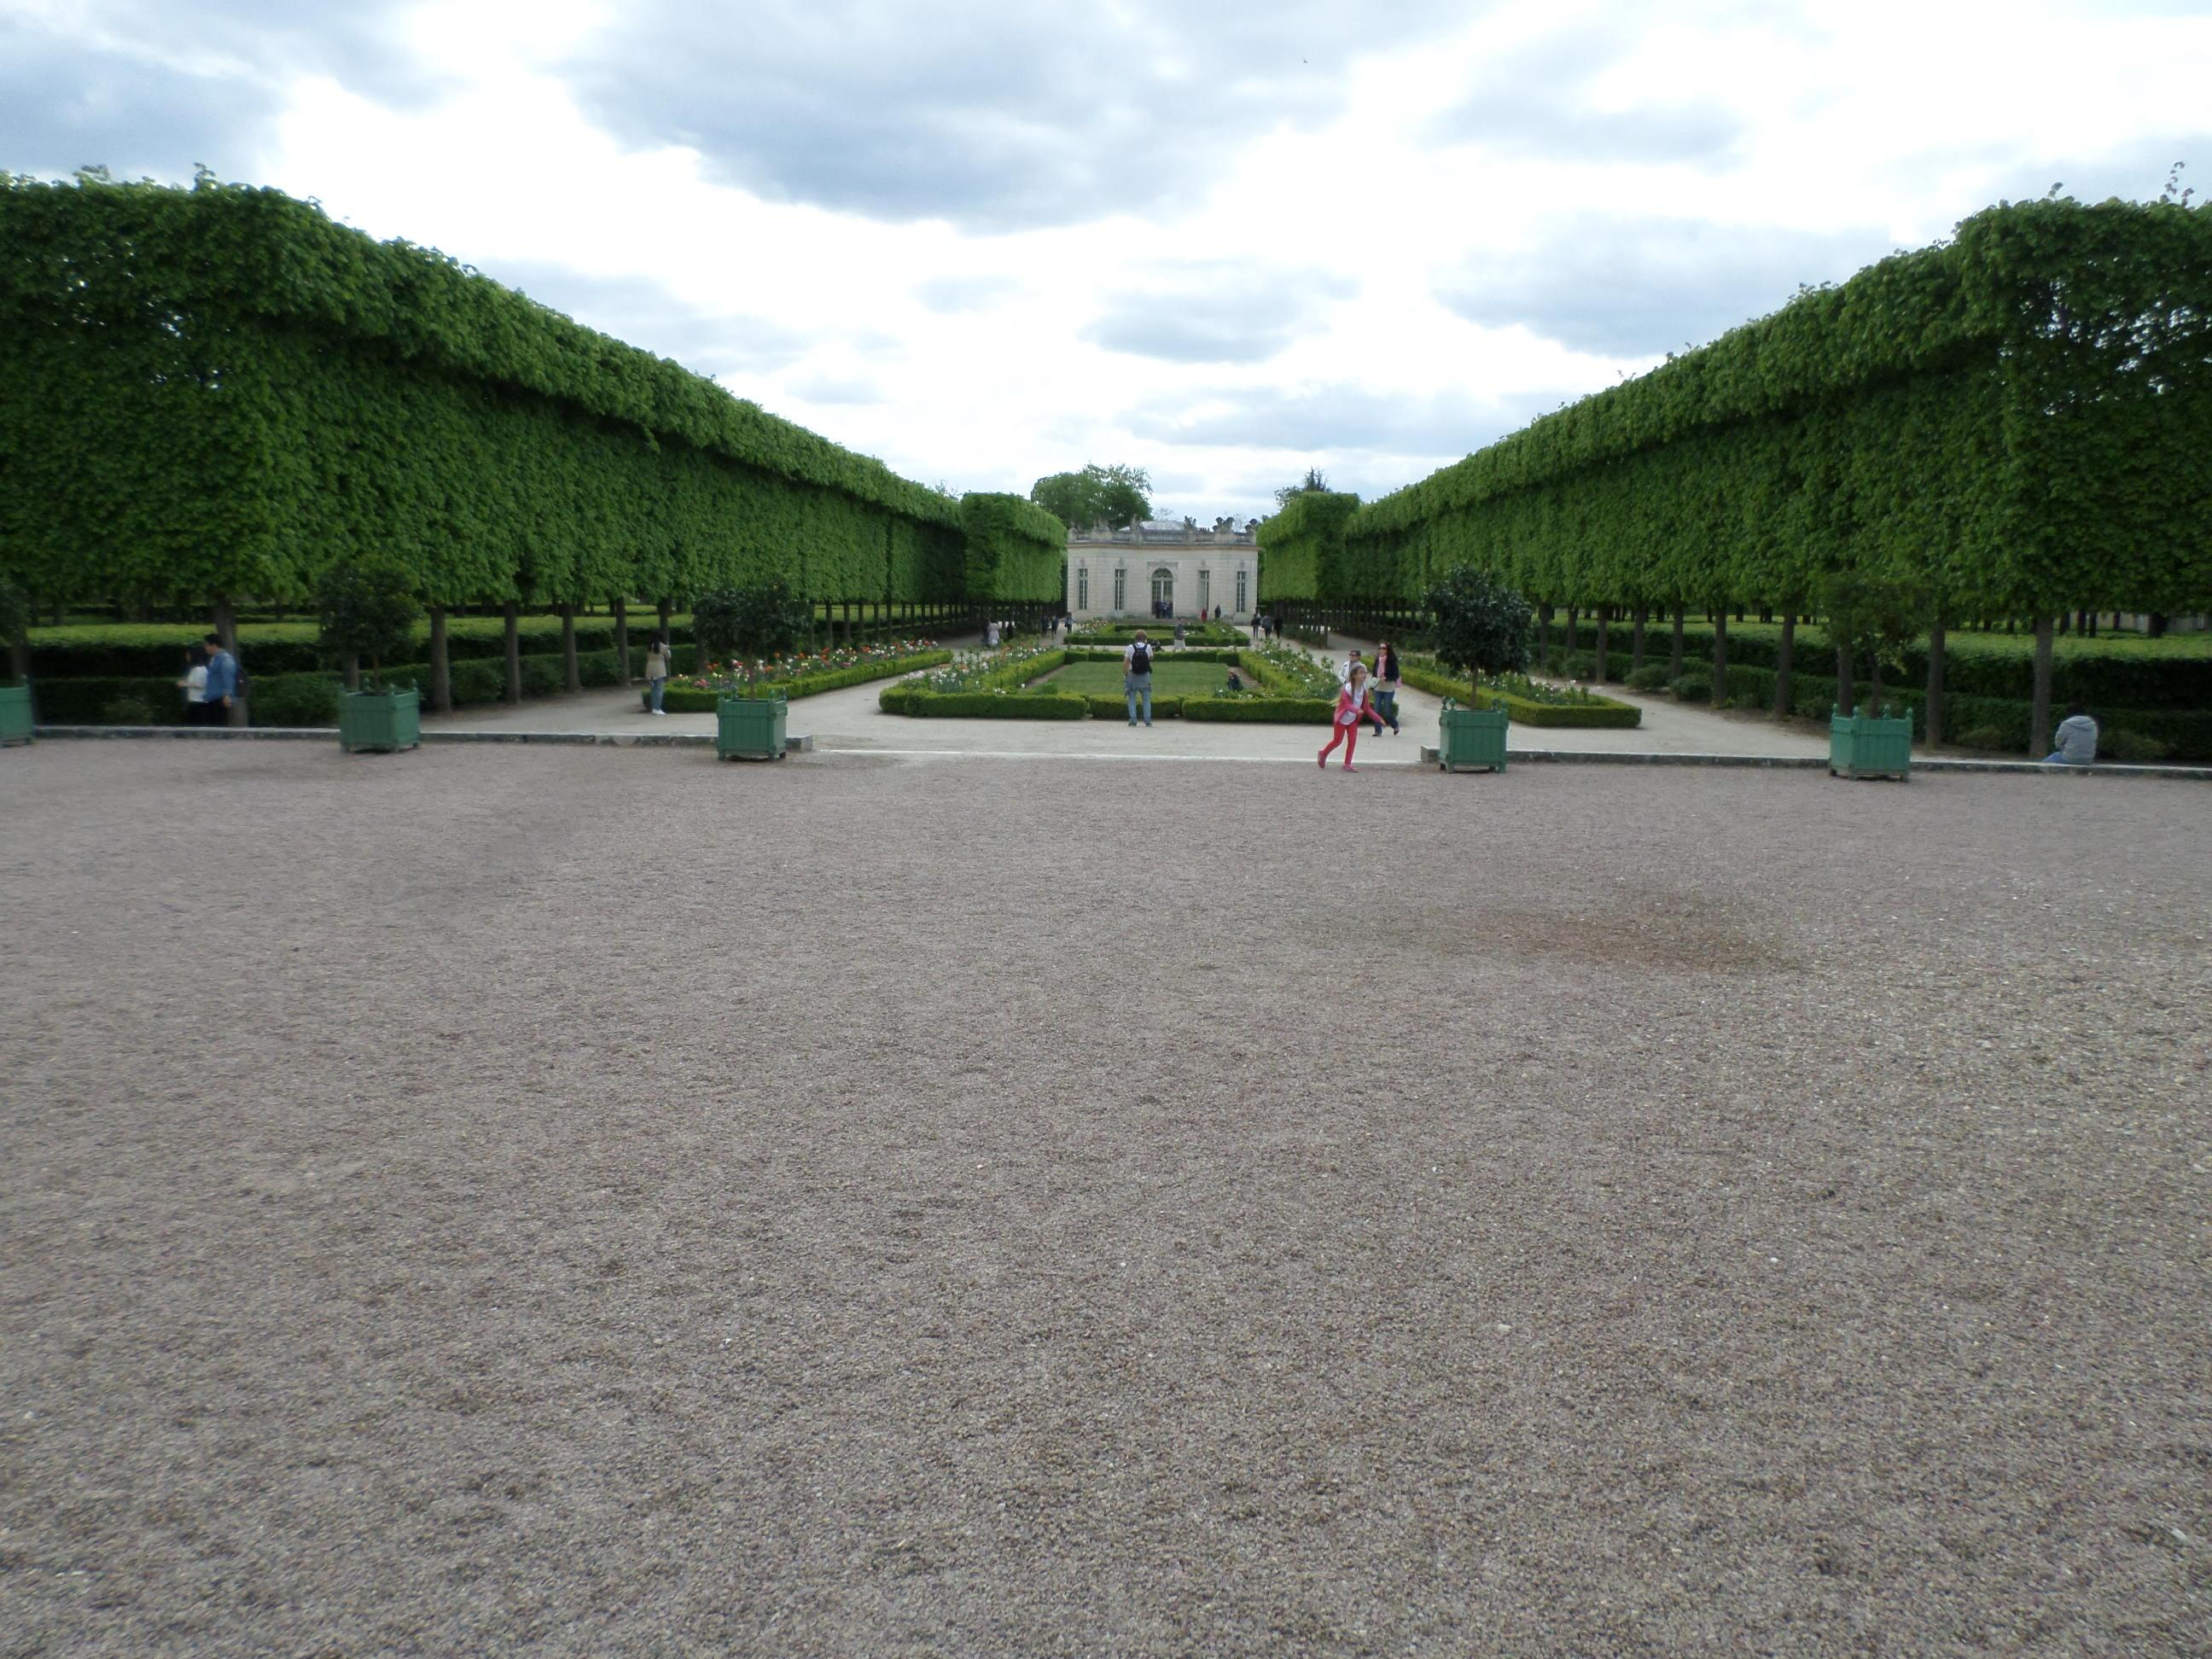 Palace of Versailles.  Petit Trianon symmetric gardens. It would take at least a day to wa